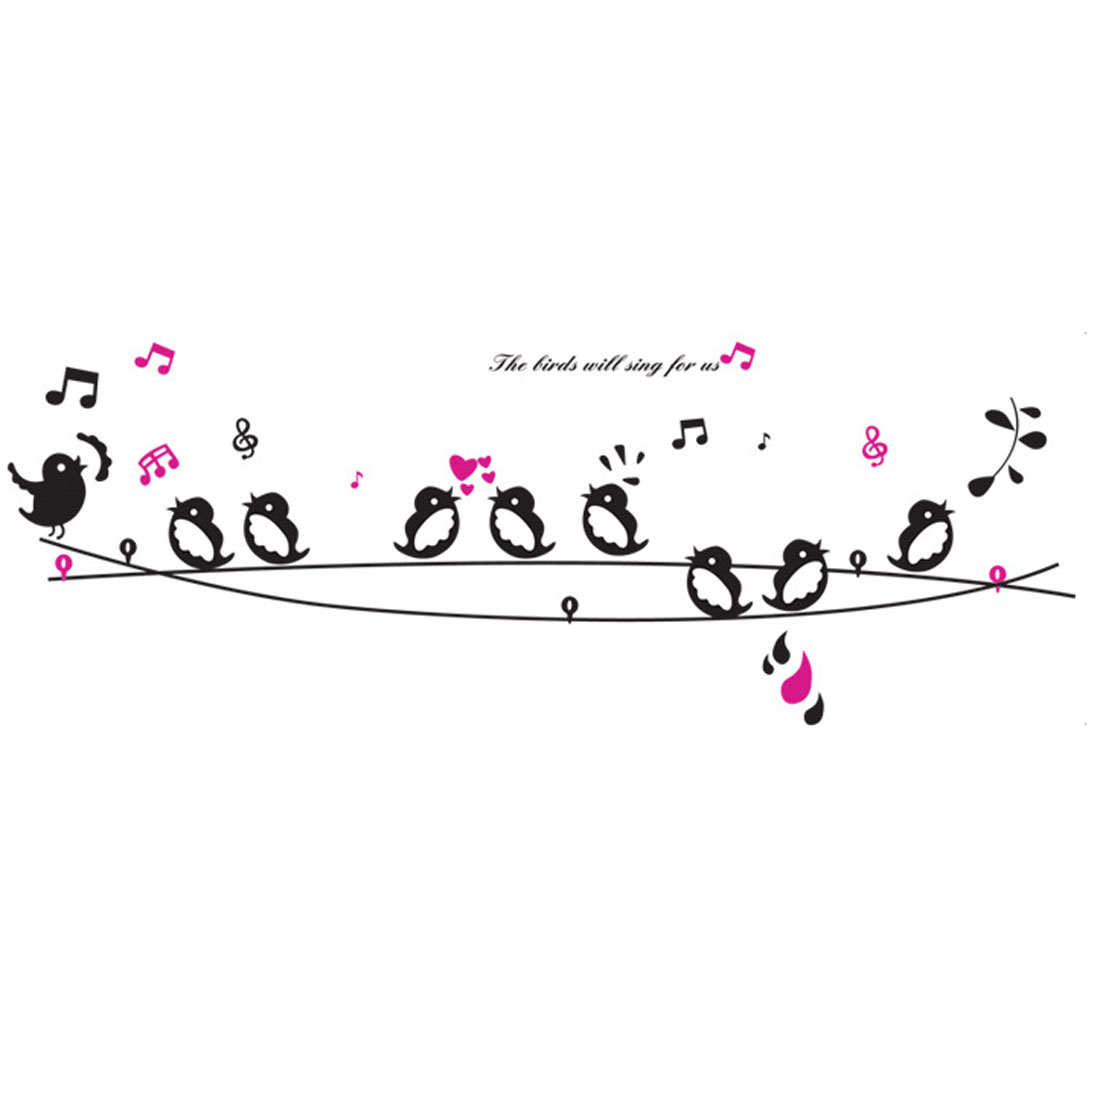 "Bedroom Accent DIY Birds Singing Music Wall Sticker Decal 63"" x 23"" Black"